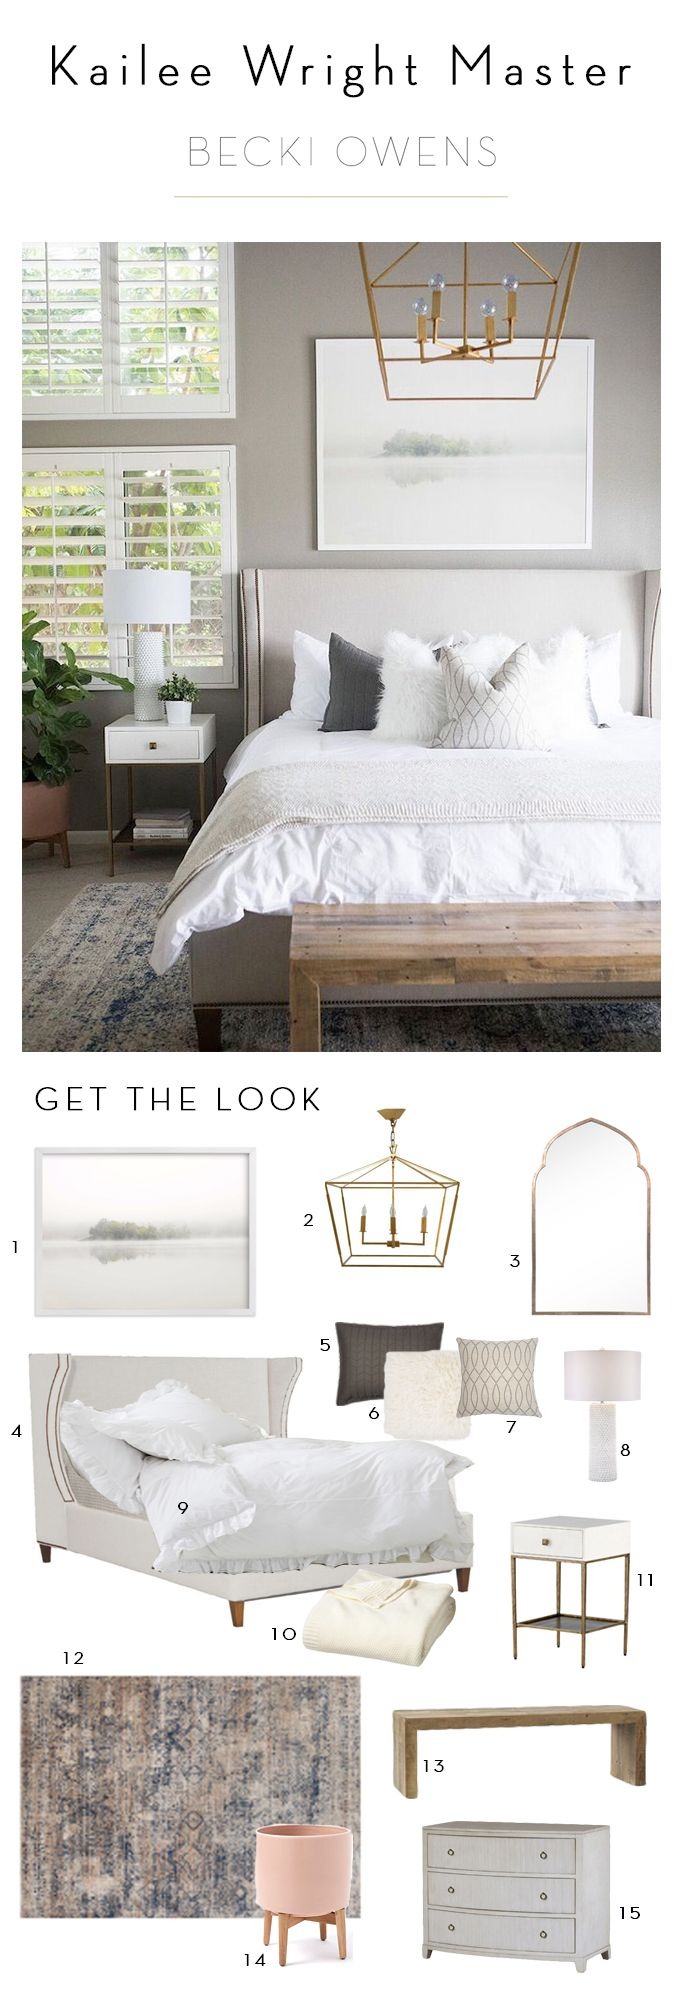 Master bedroom holly springs ga shabby chic style bedroom - Becki Owens Kailee Wright Master Bedroom Reveal A Fresh Bedroom Update With Benjamin